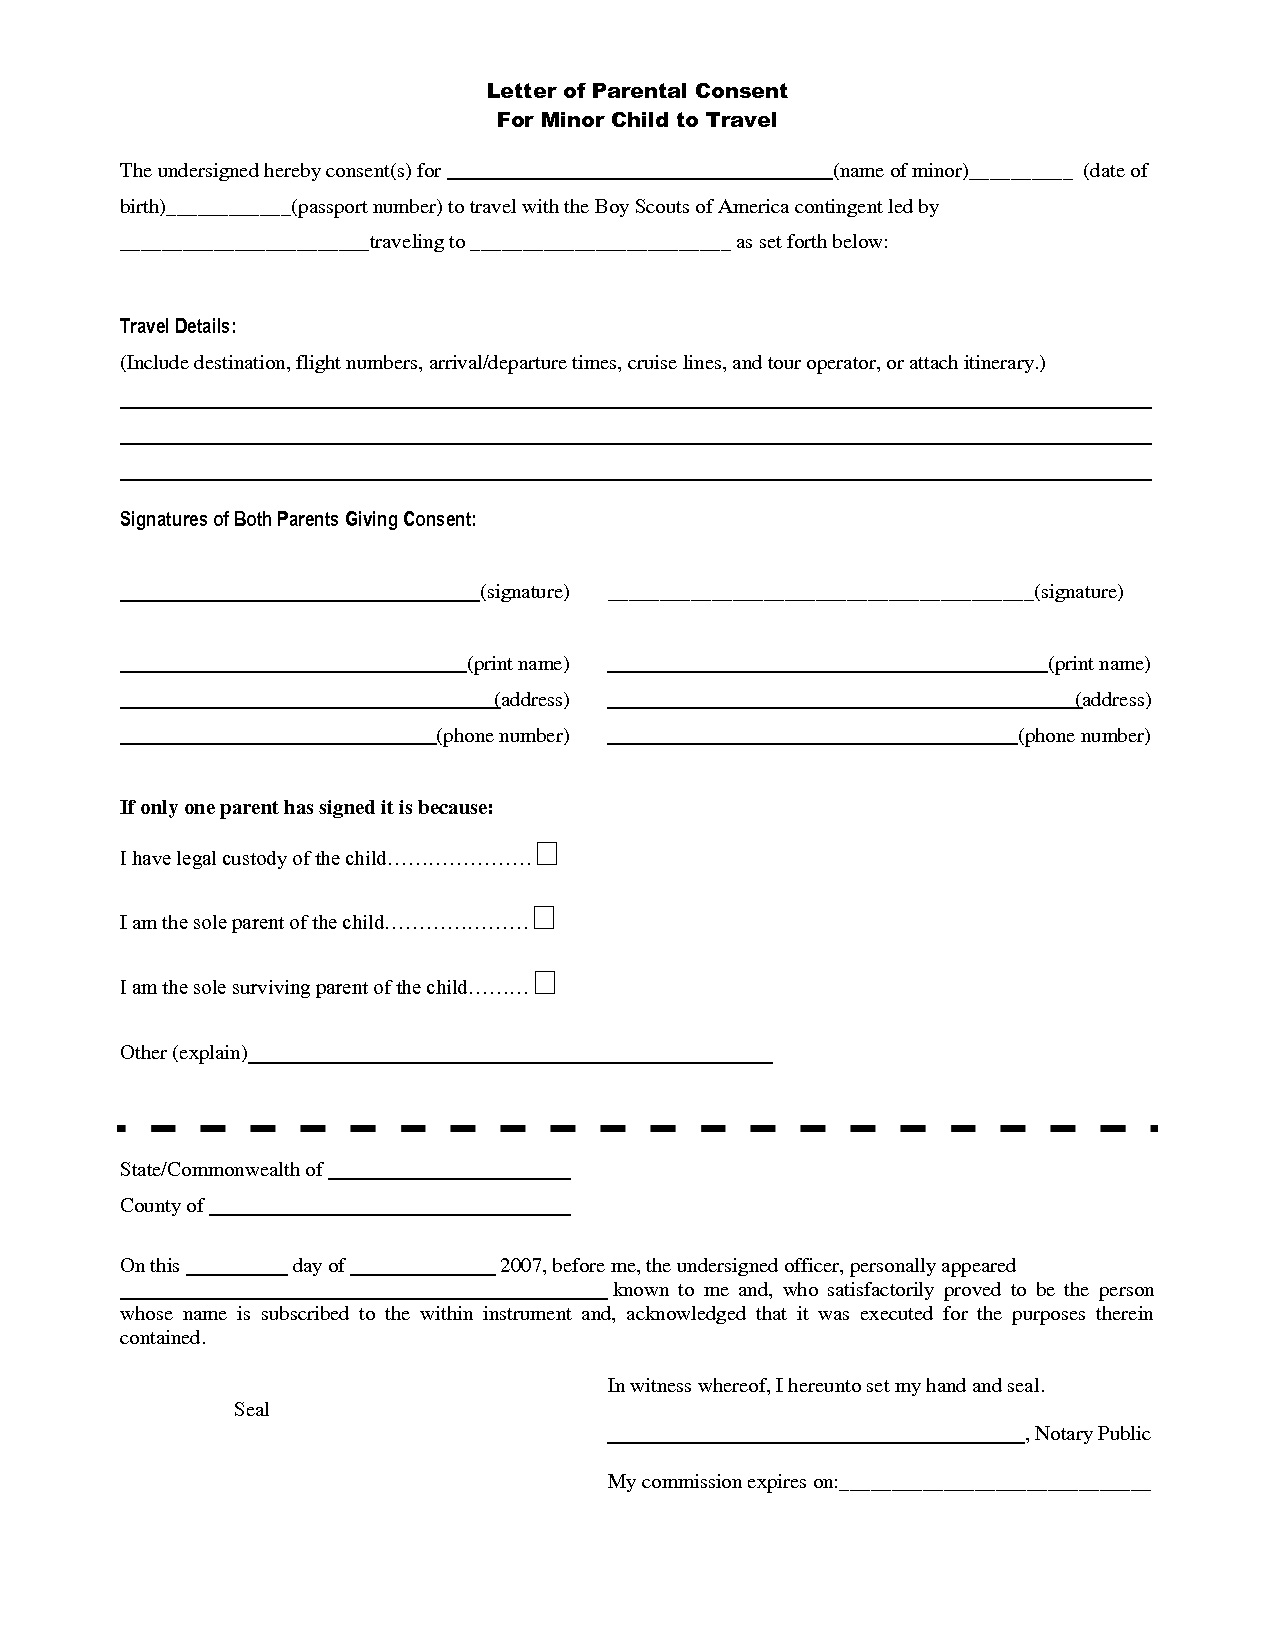 Nigerian Visa Application Form Pdf